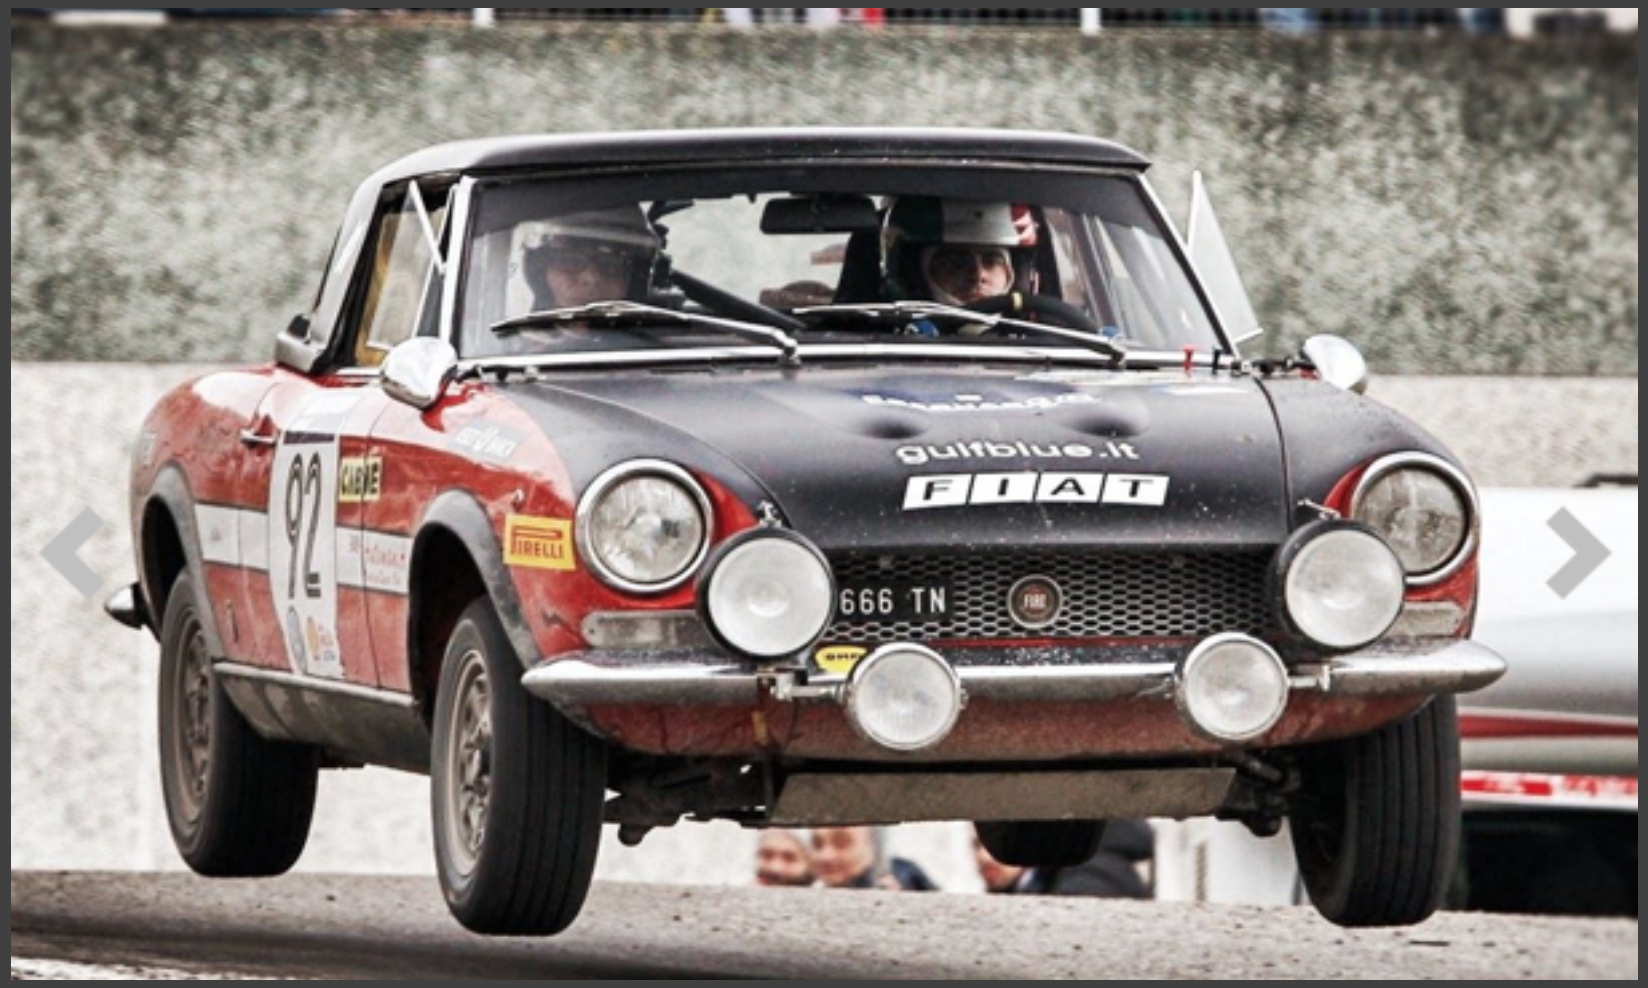 Jumping fiat in rallye car